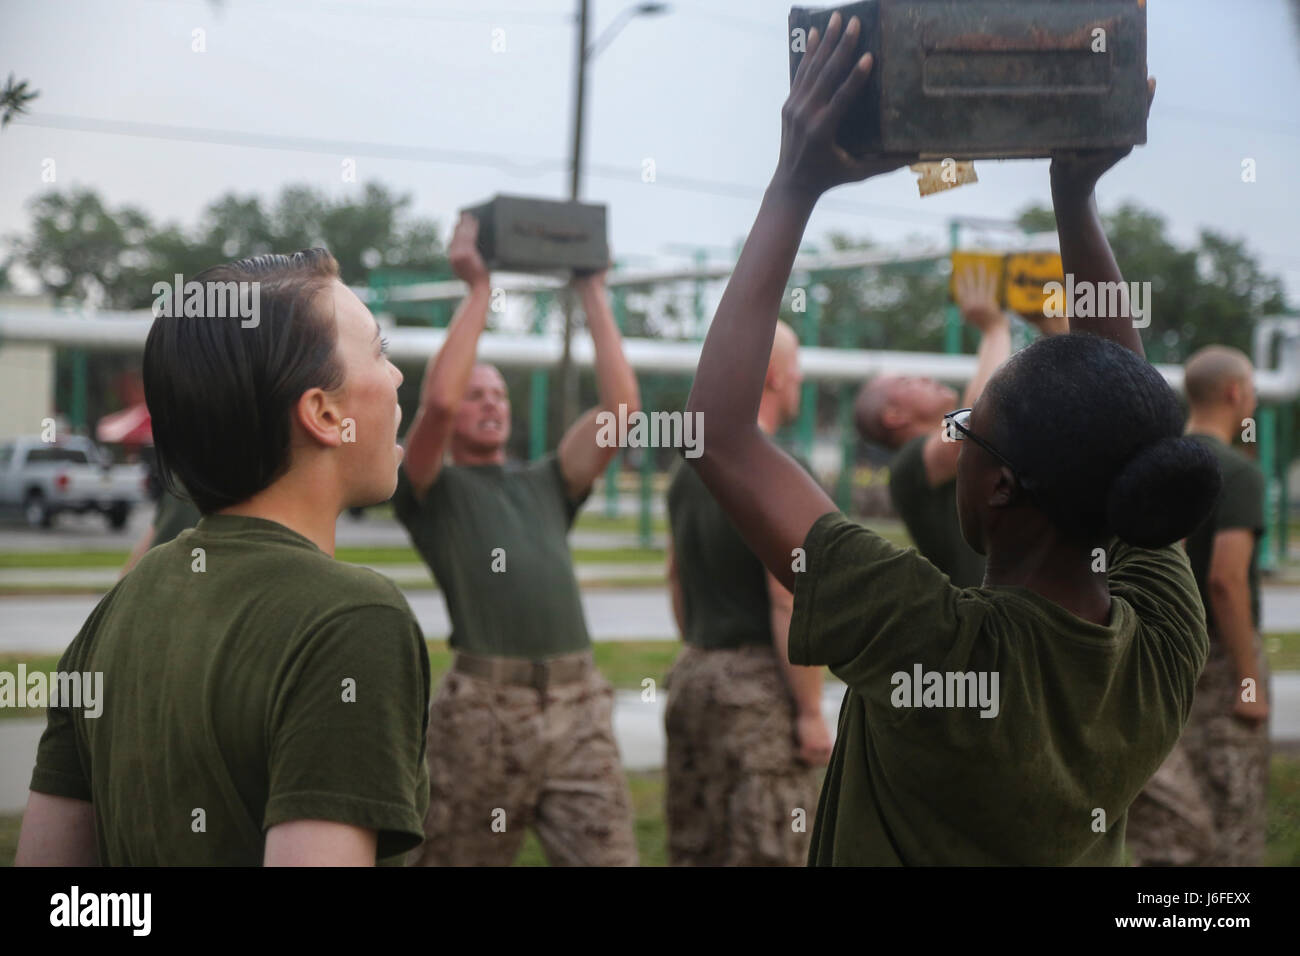 U.S. Marine Corps Recruits with Company O, 4th Battalion and Company G, 2nd Battalion execute ammunition can lifts - Stock Image